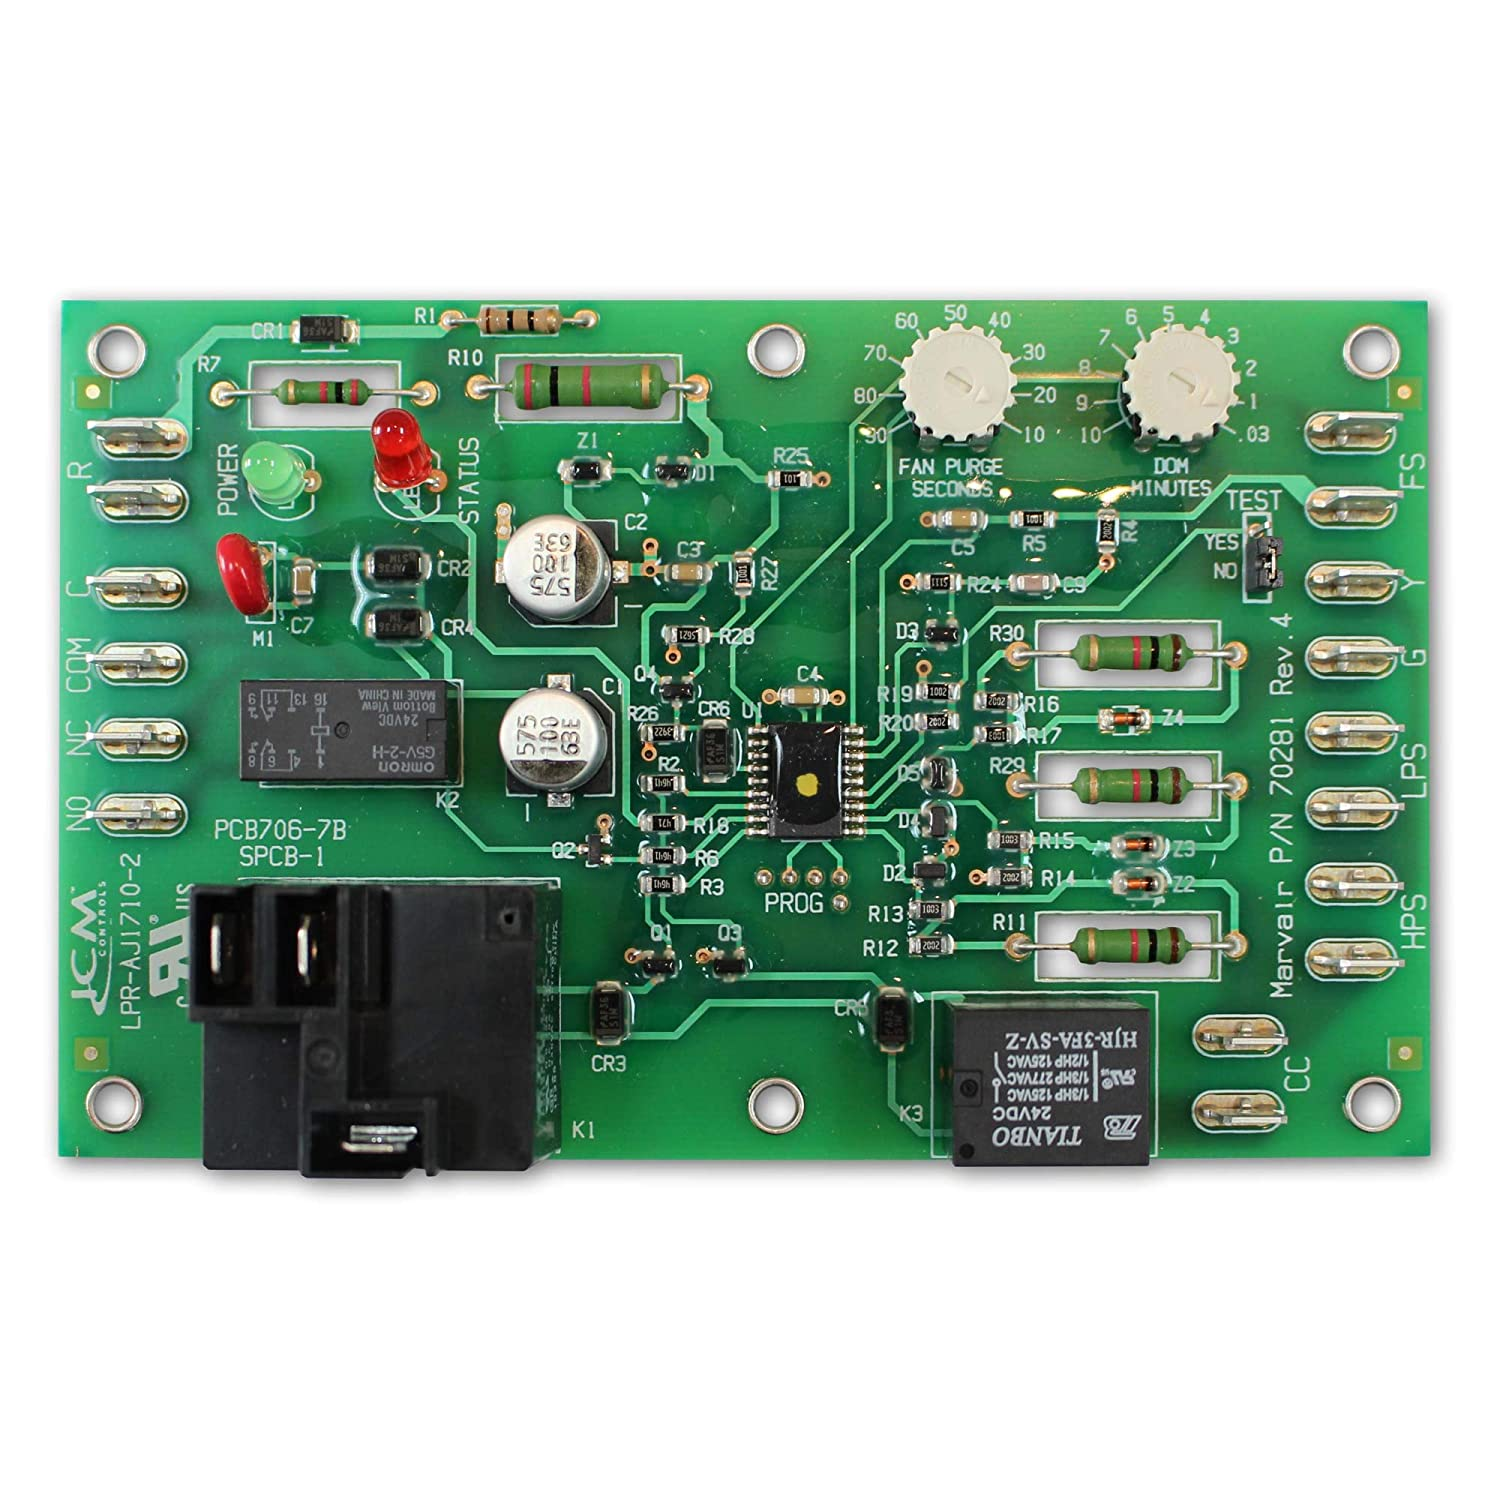 Marvair 70281 Electronic Control Board for ComPac AC: Amazon ...